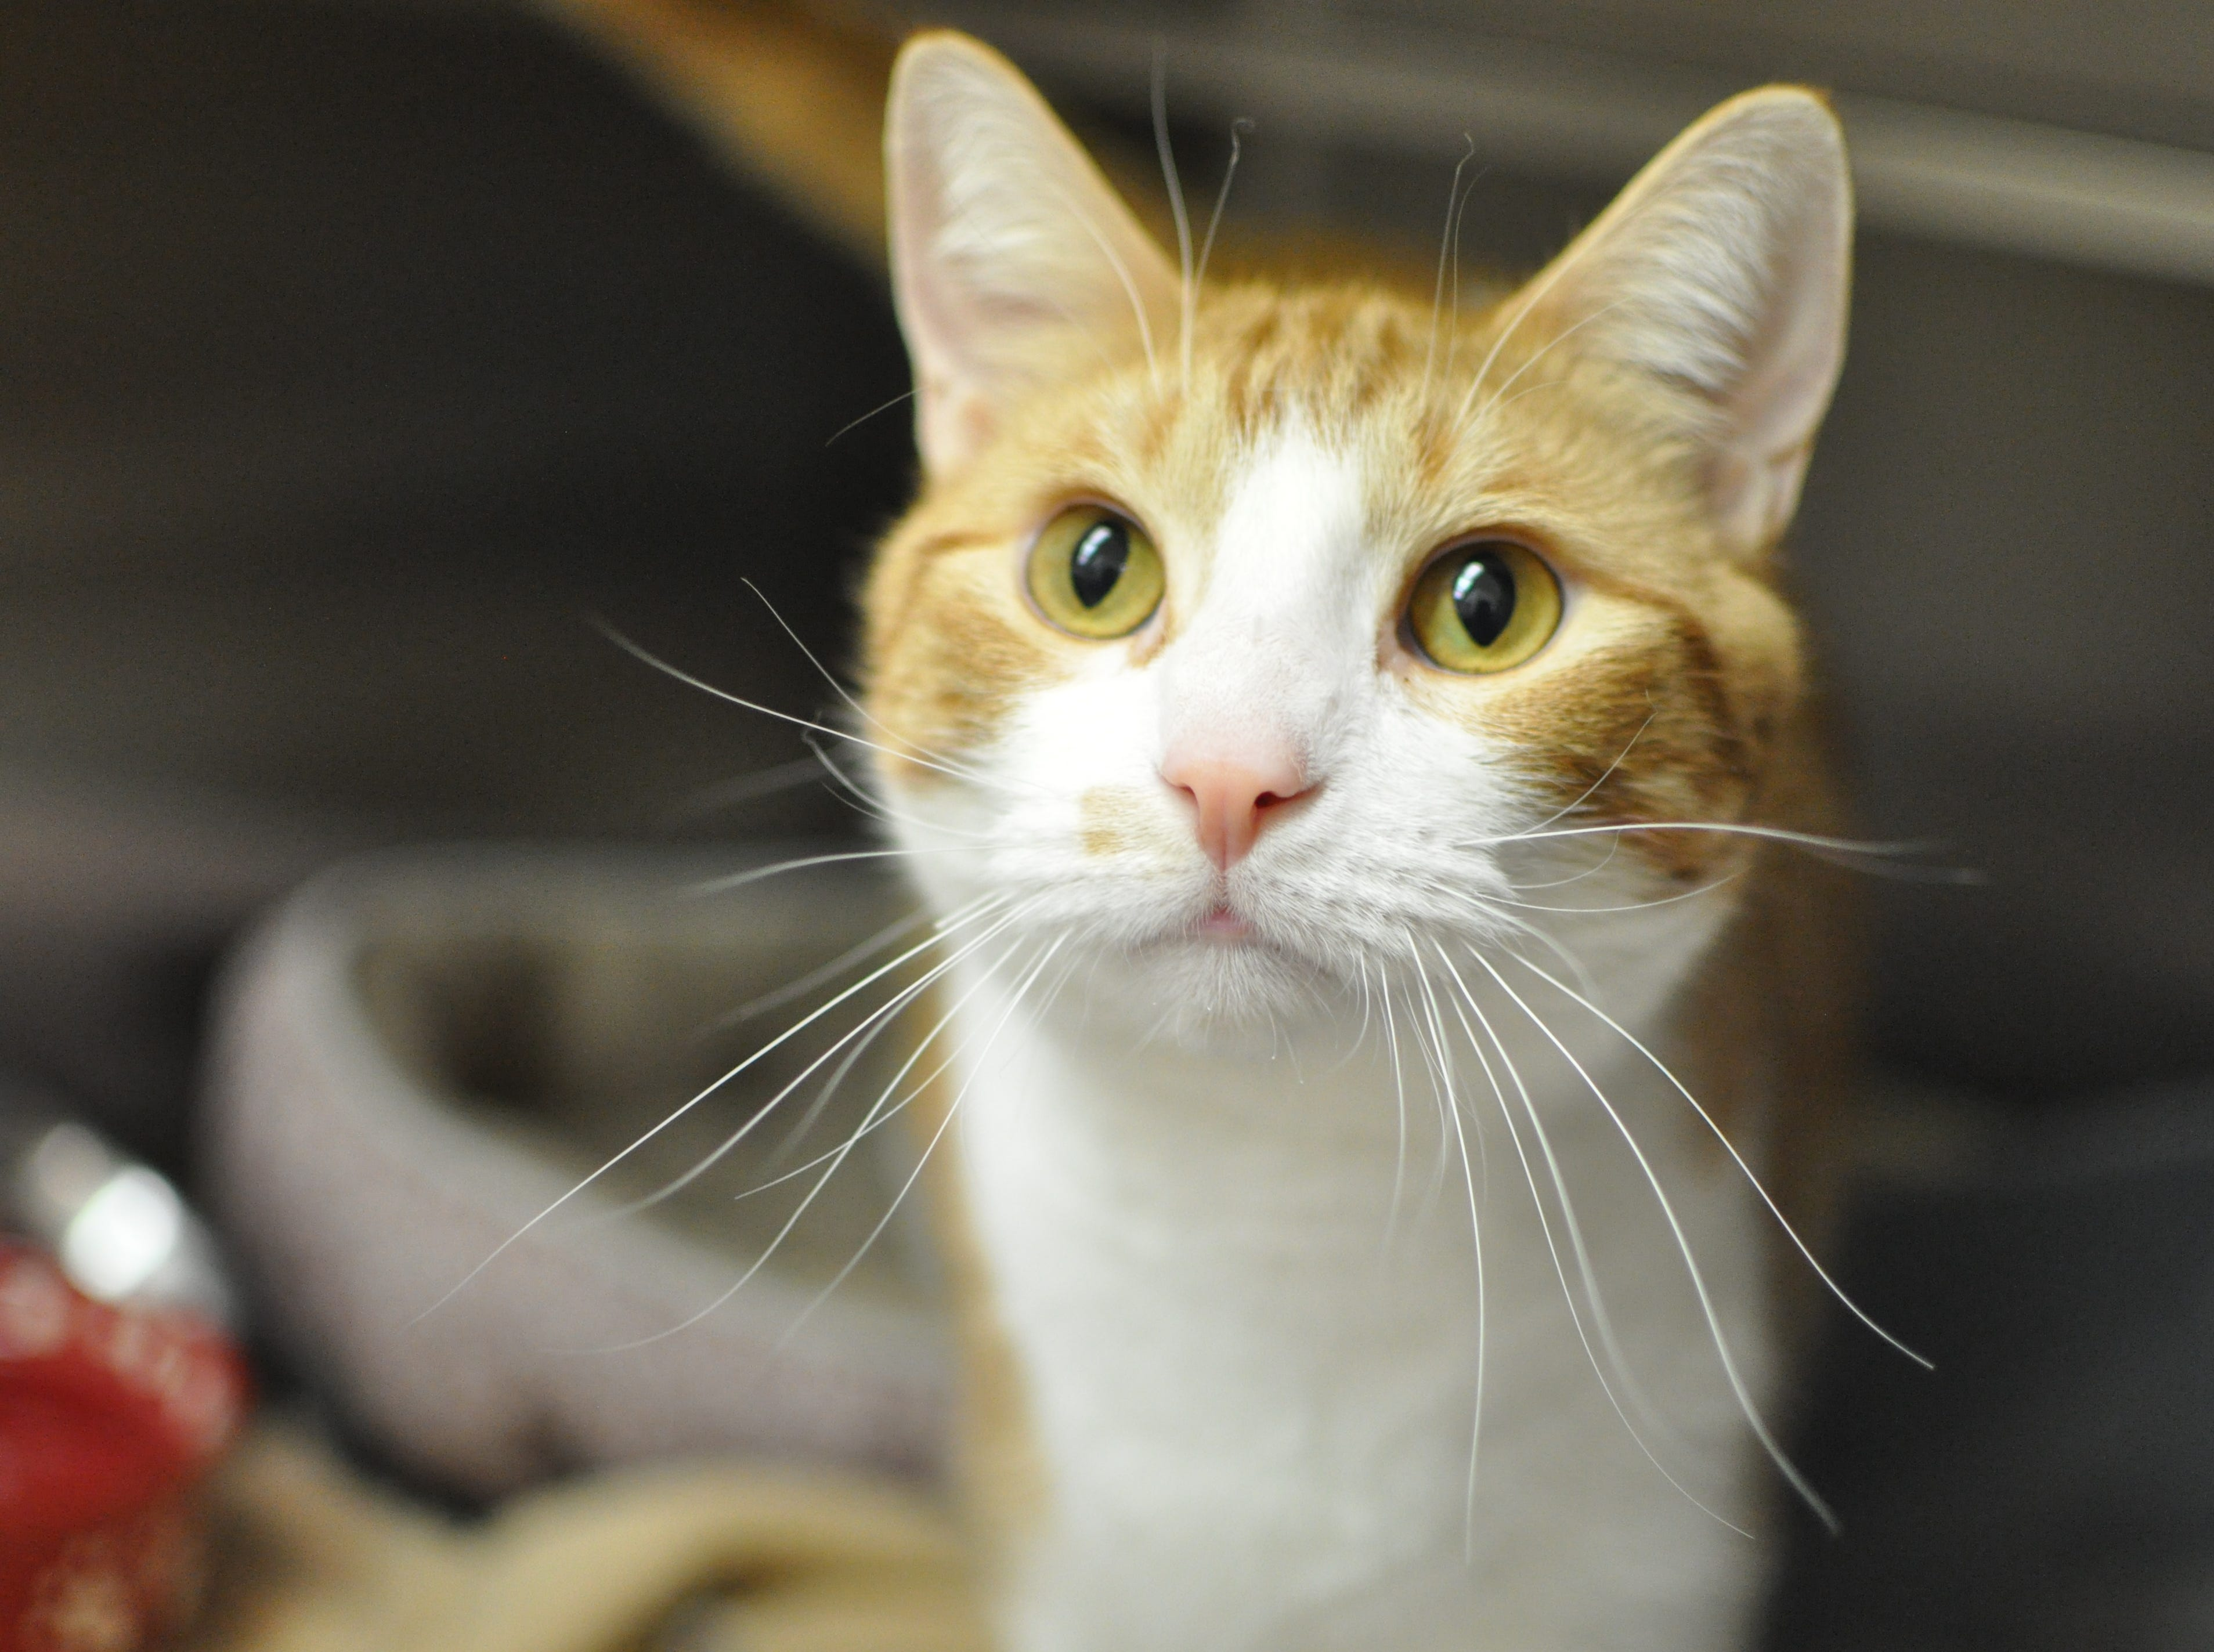 Spuddy Buddy, 2, loves sparkle balls, head butts and being pet. He is neutered.